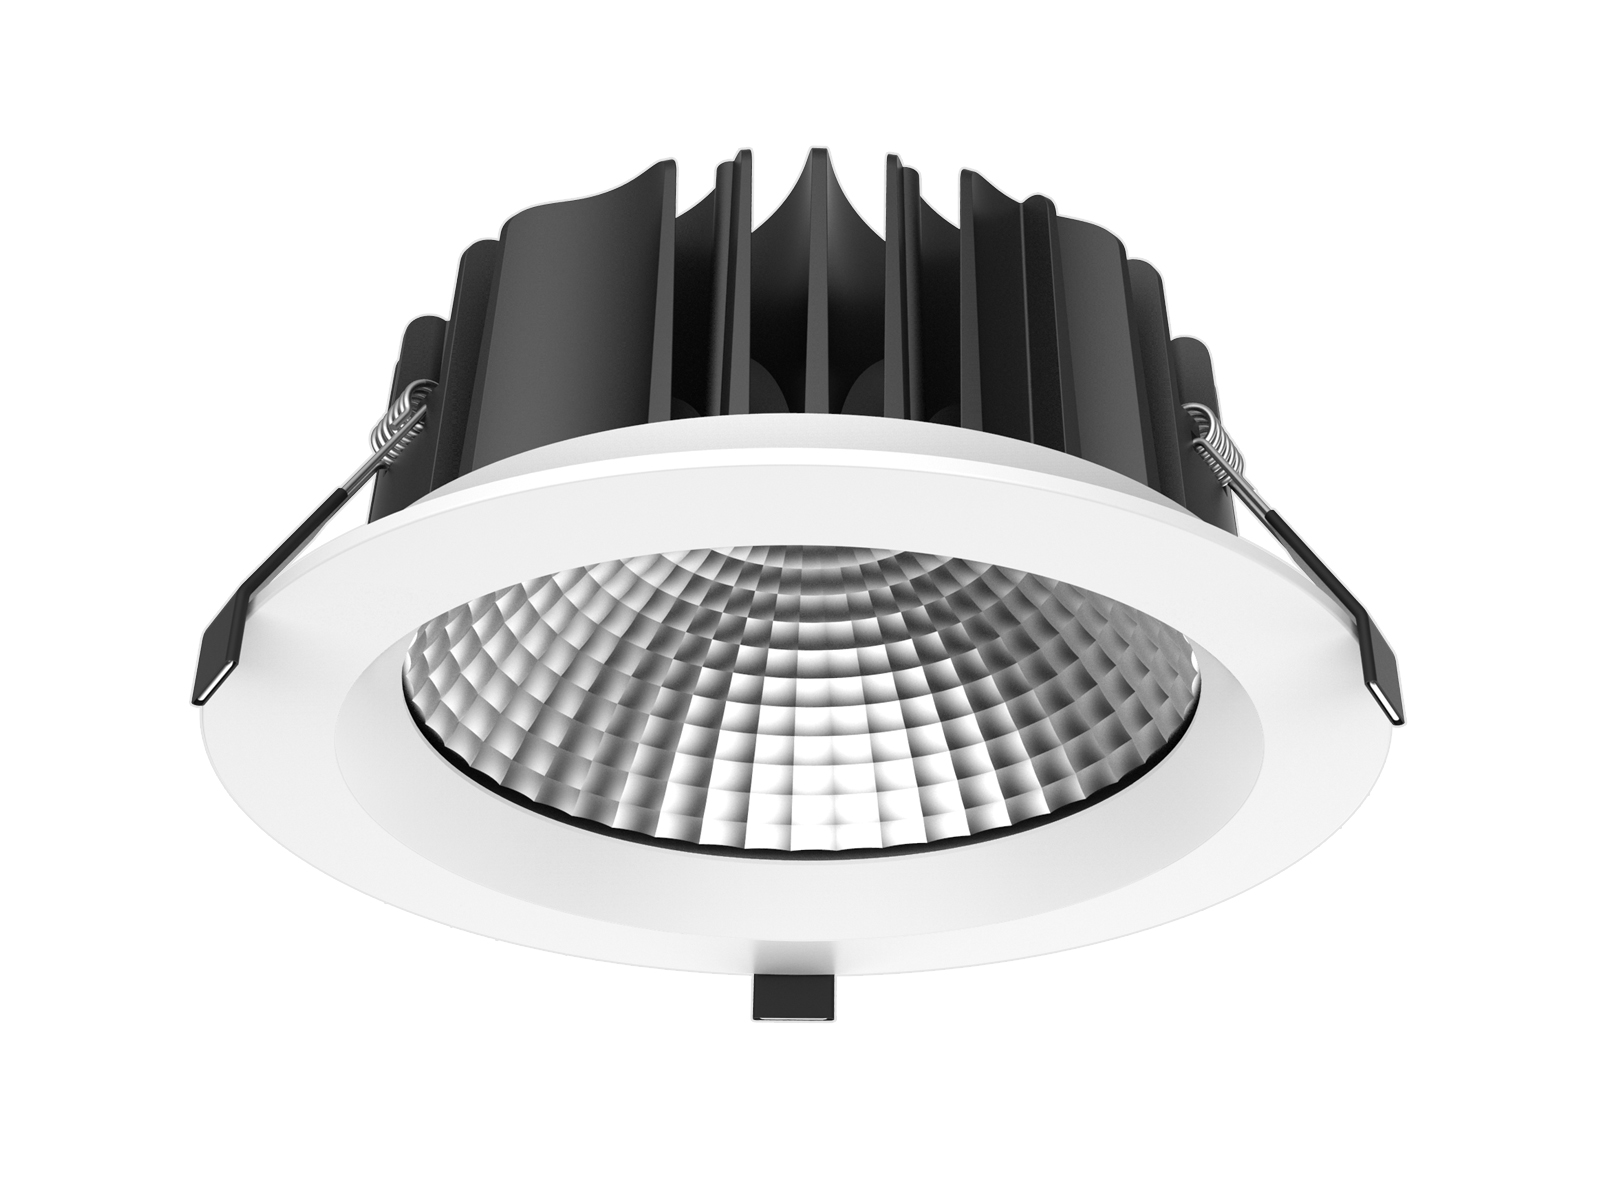 Cob Led Downlights Upshine Lighting